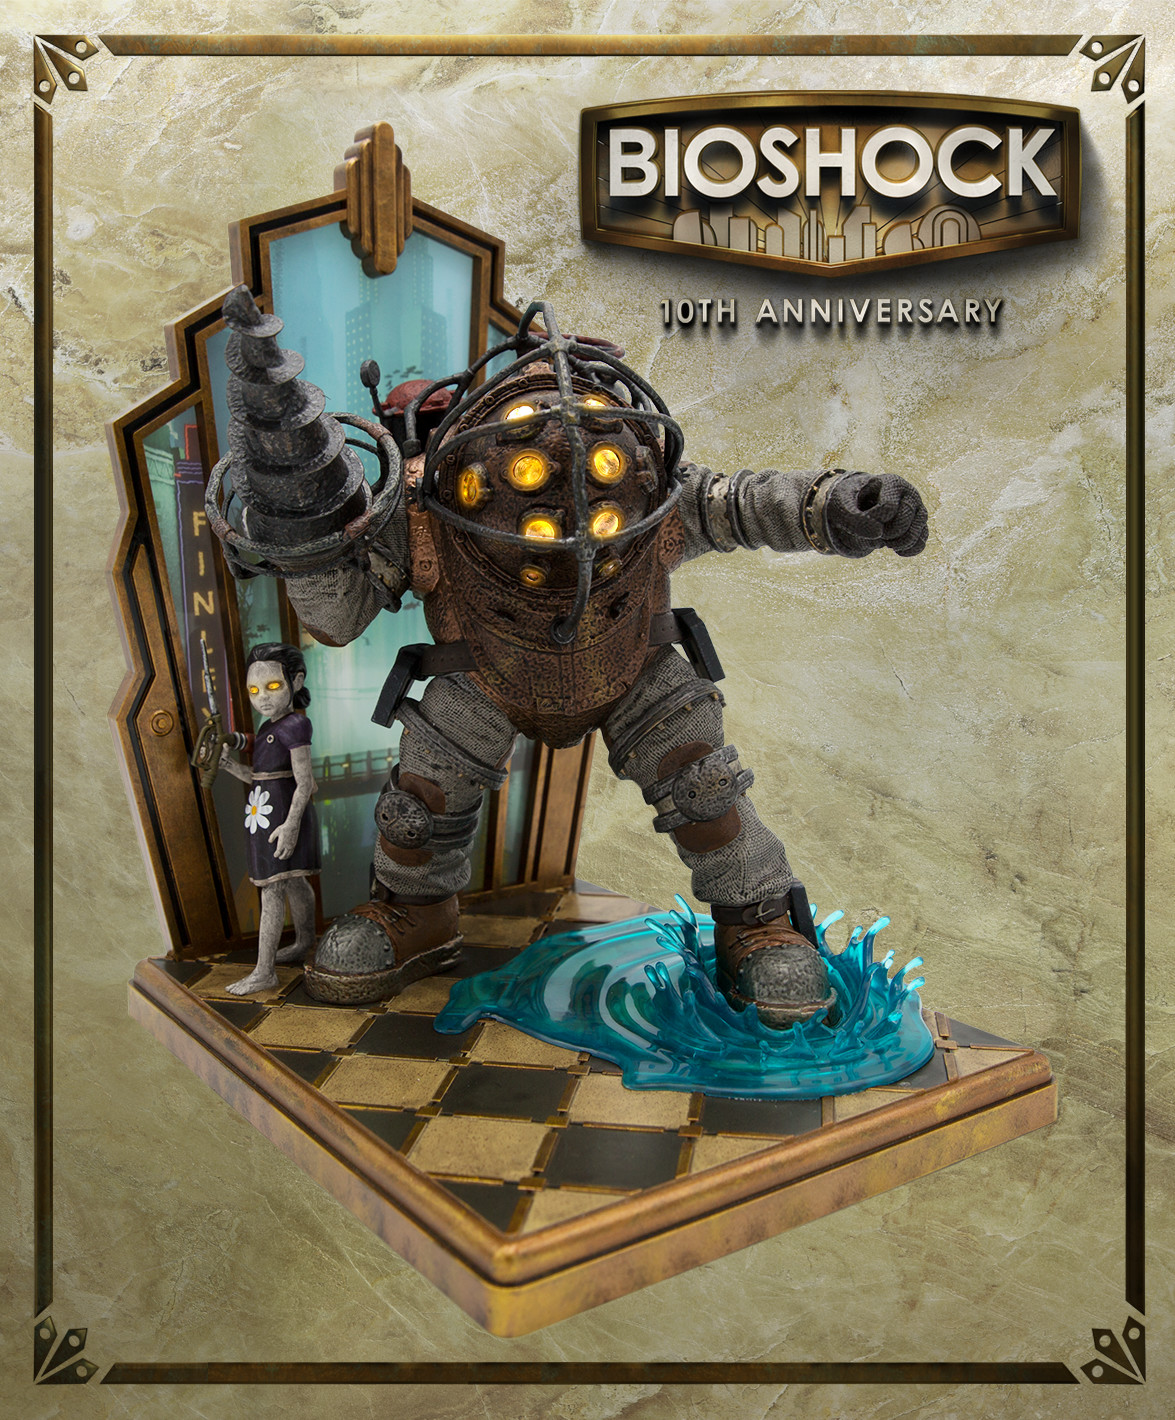 BioShock: 10th Anniversary Collector's Edition announced for US